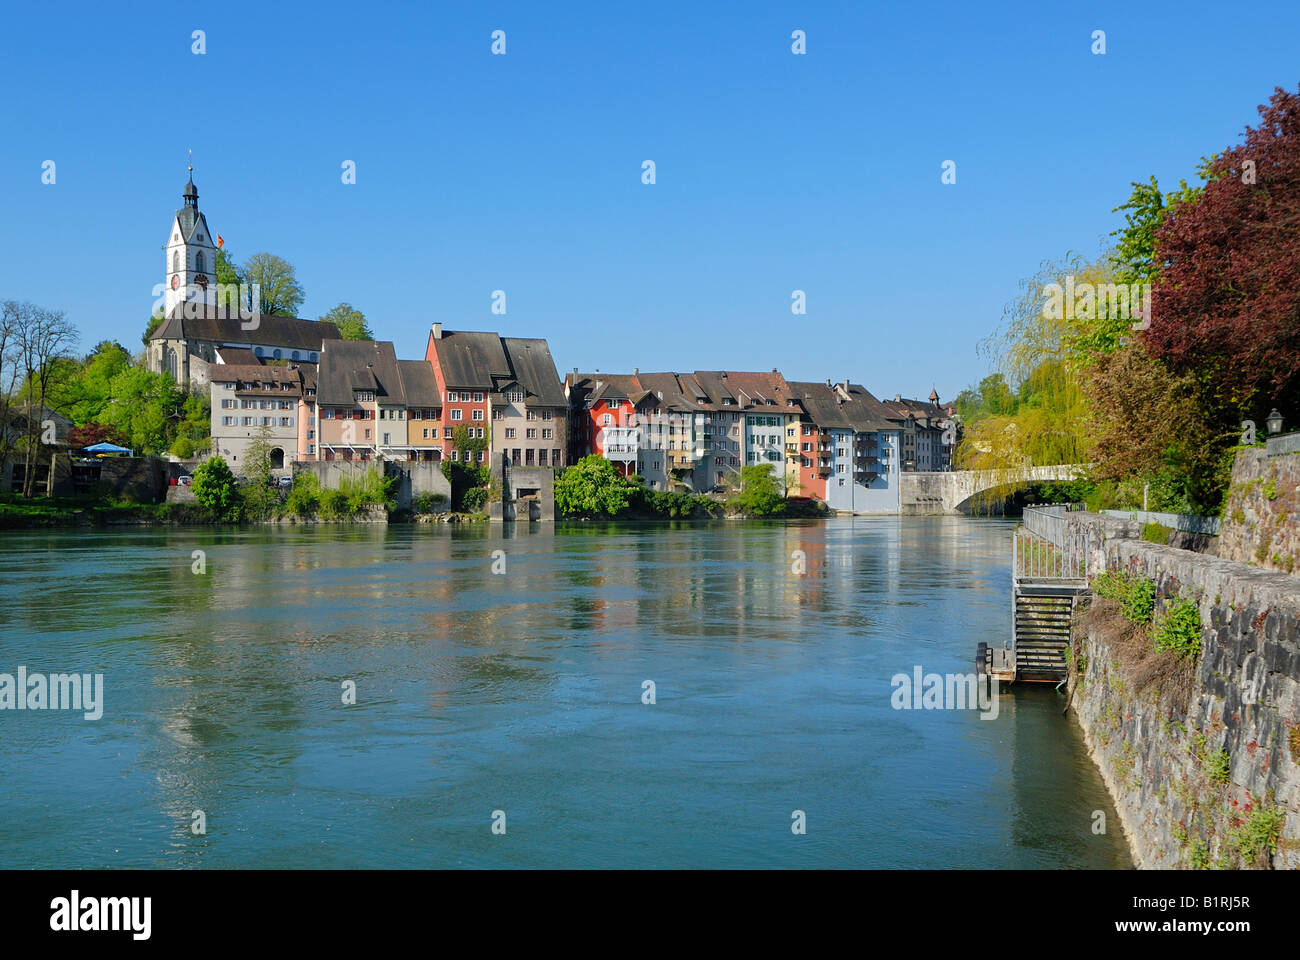 Historic centre of Laufenburg on the Rhine River, Baden-Wuerttemberg, Germany, Europe - Stock Image